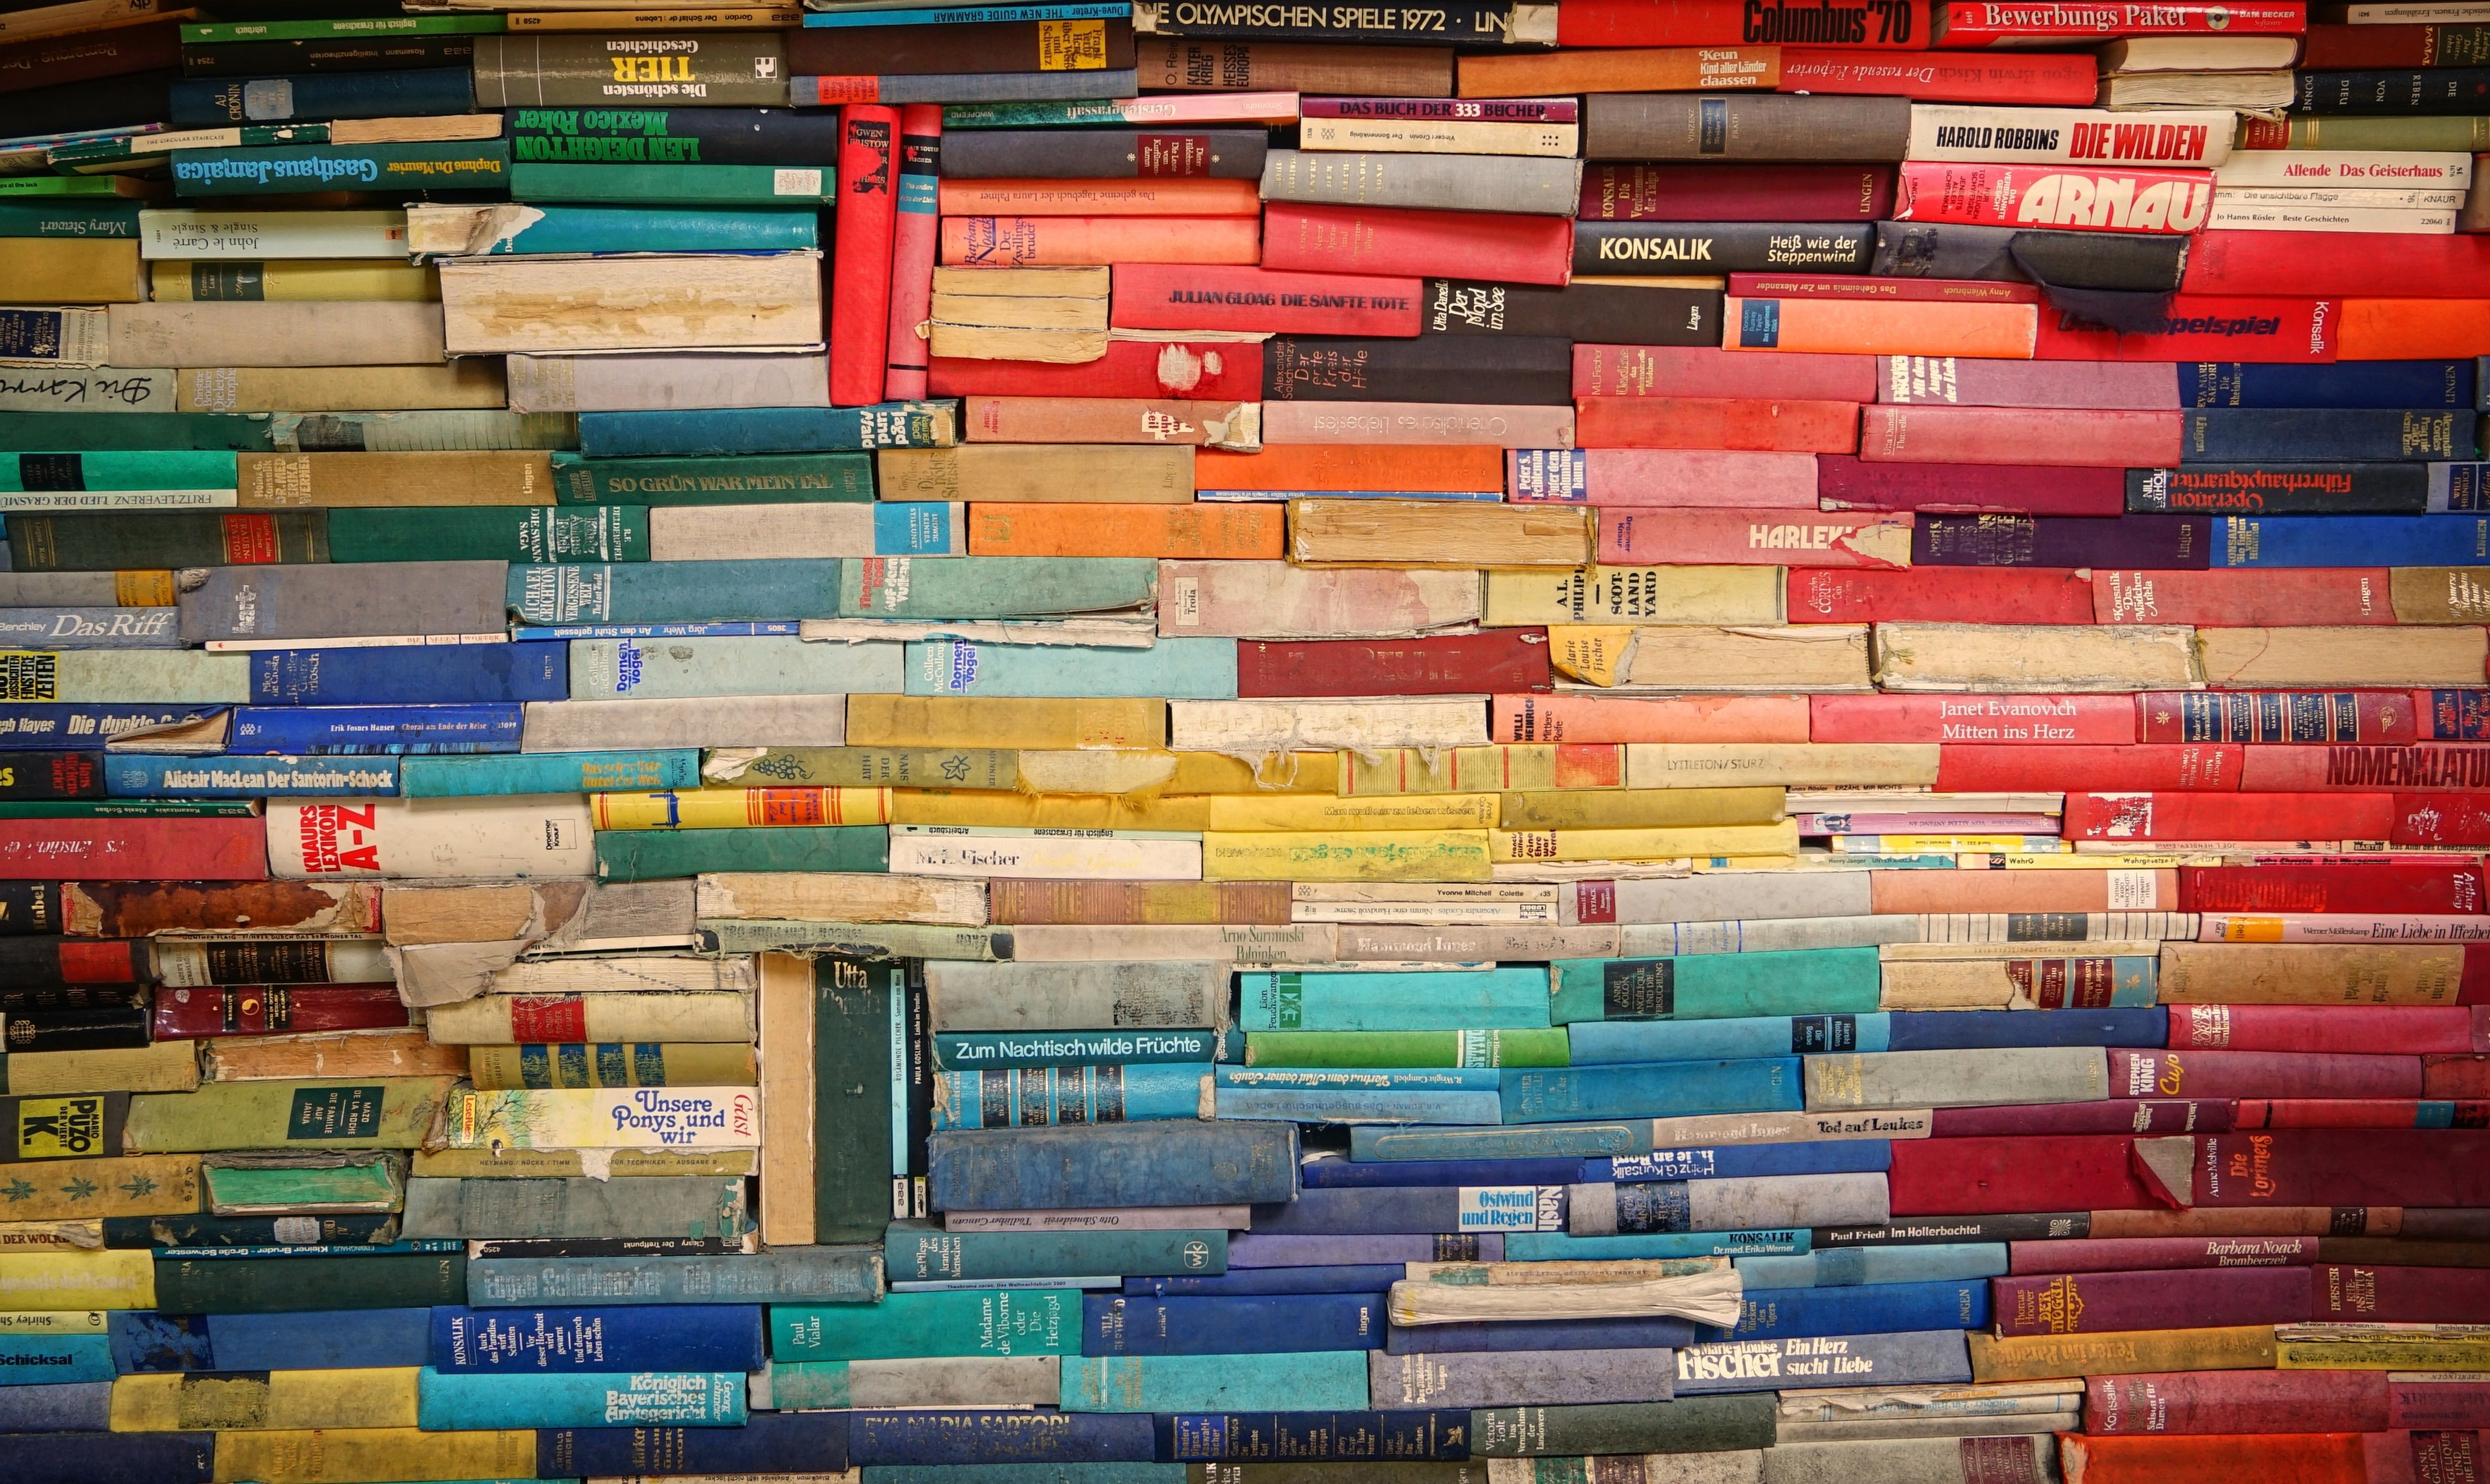 Photos of many colors of books stacked on their sides.